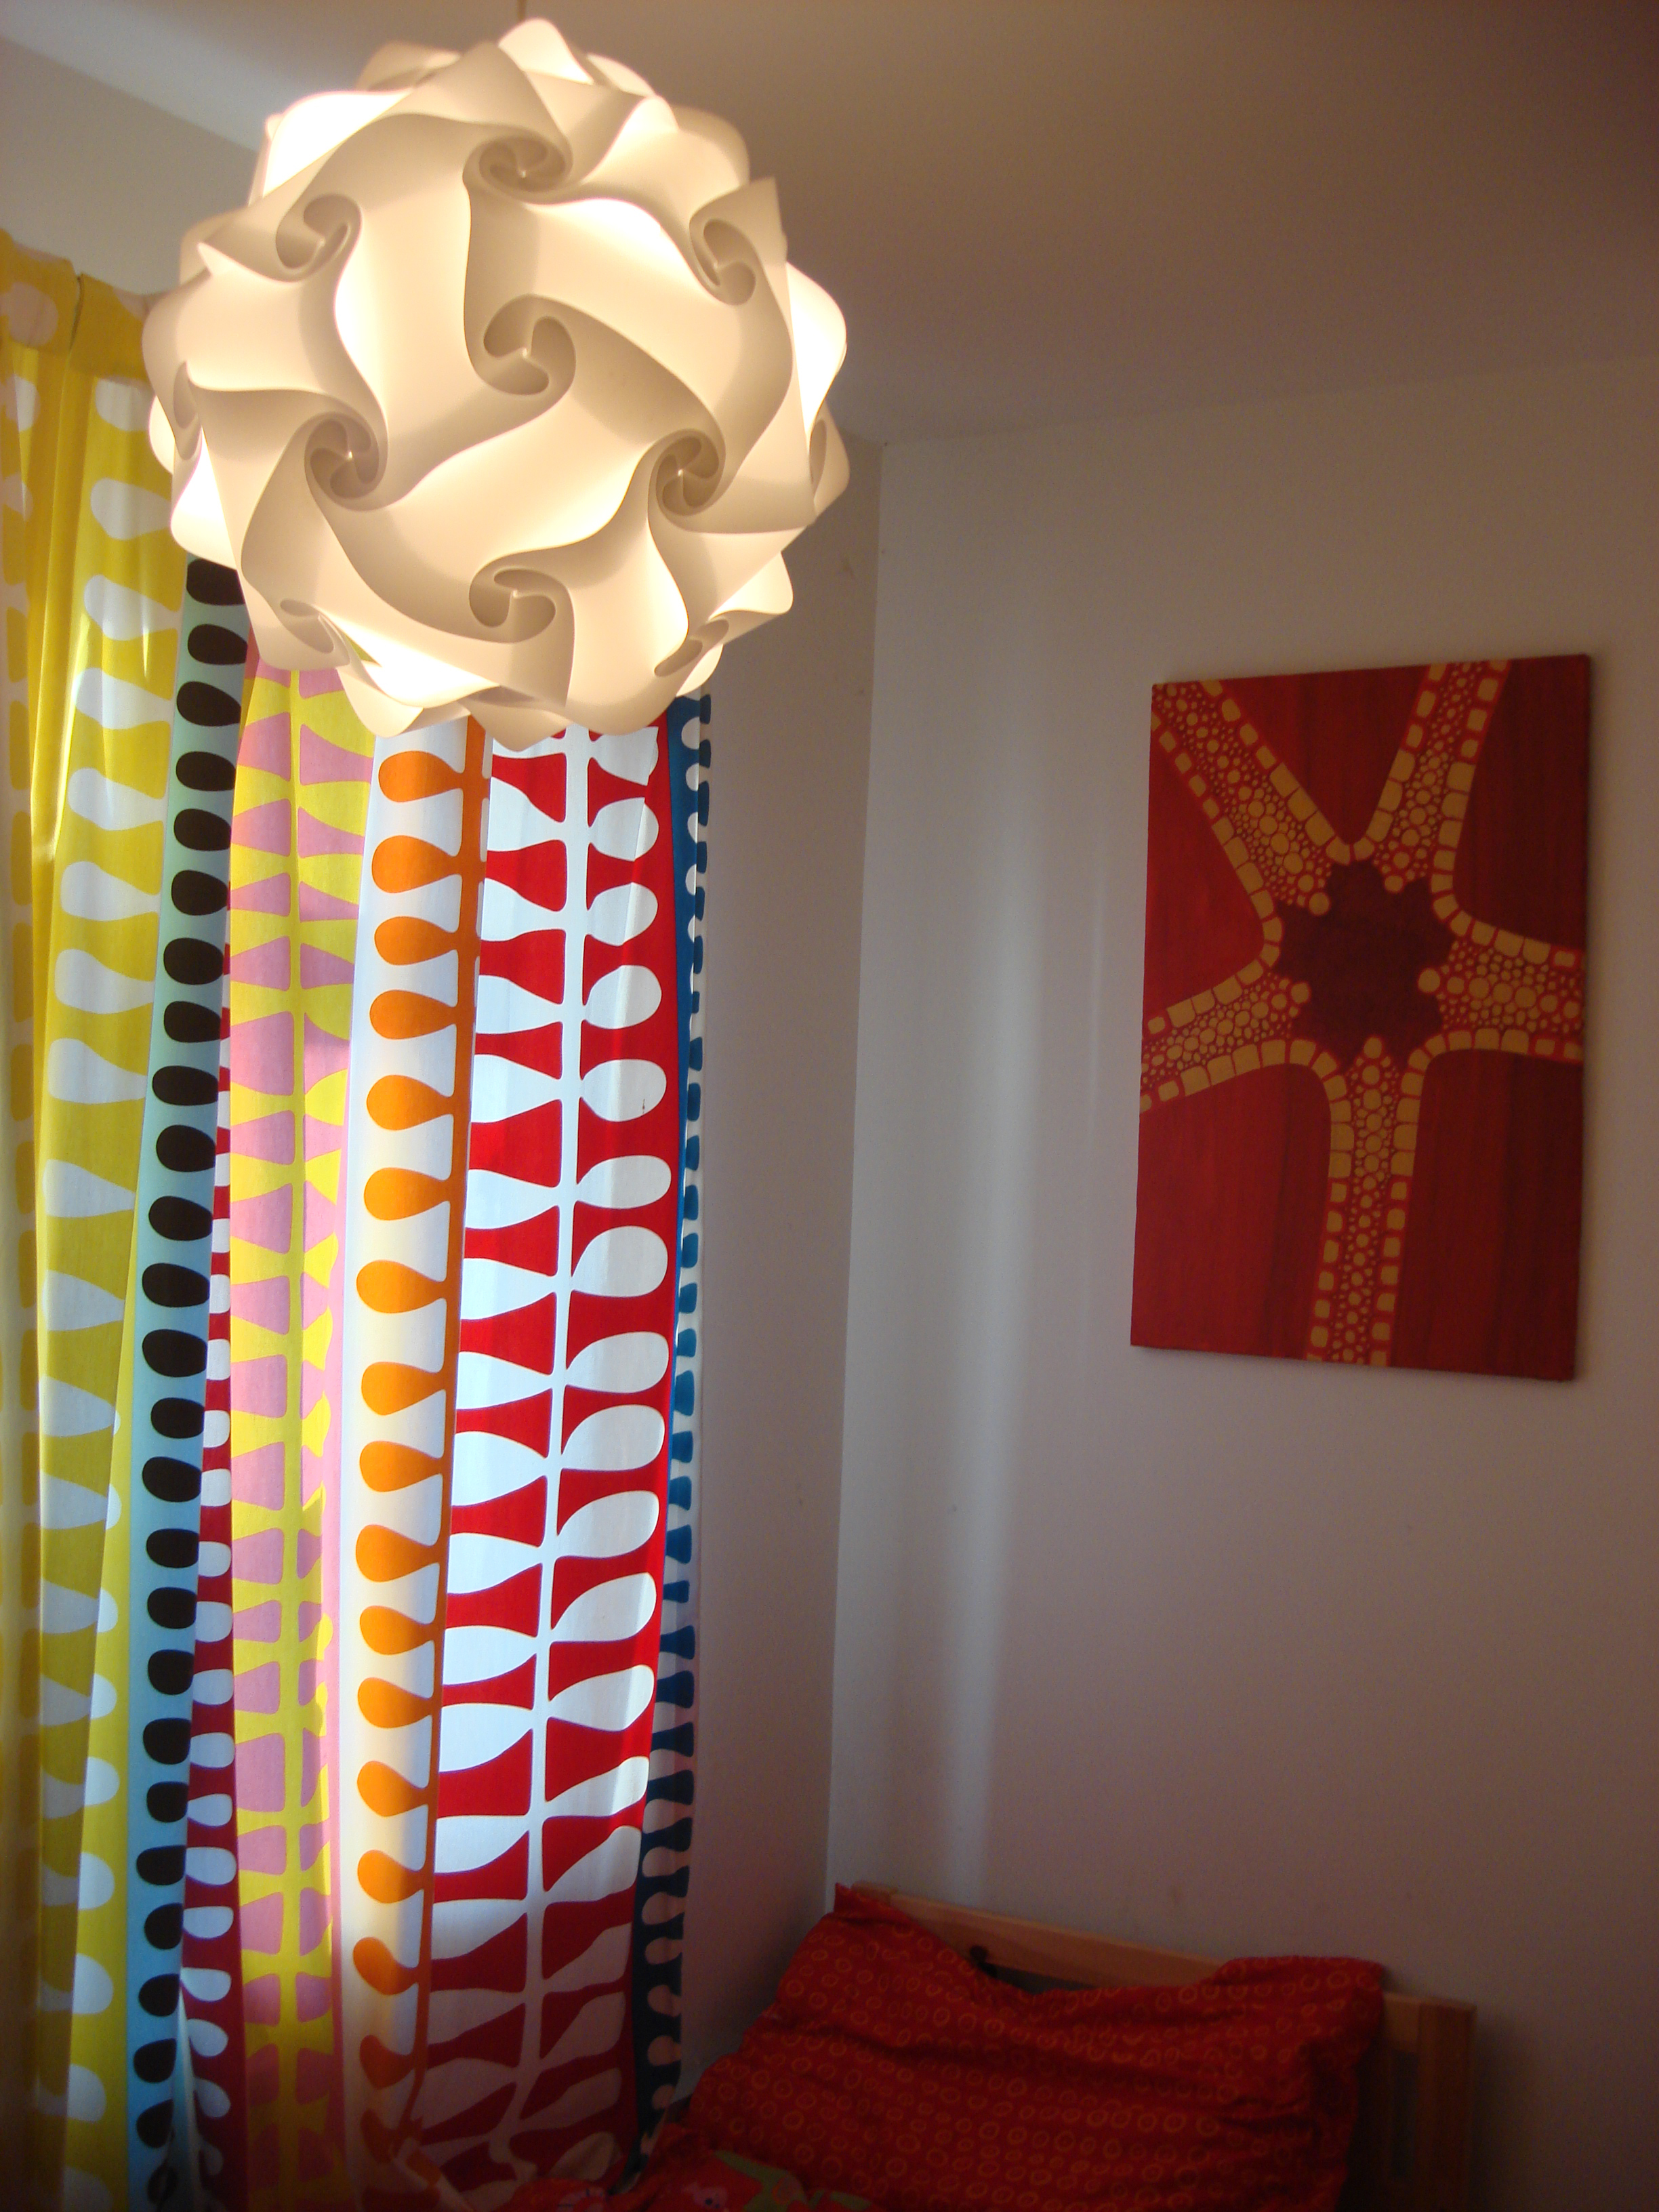 Geometric Patterned Curtains Smartylampscouk Press Office Hosted By Press Dispensary